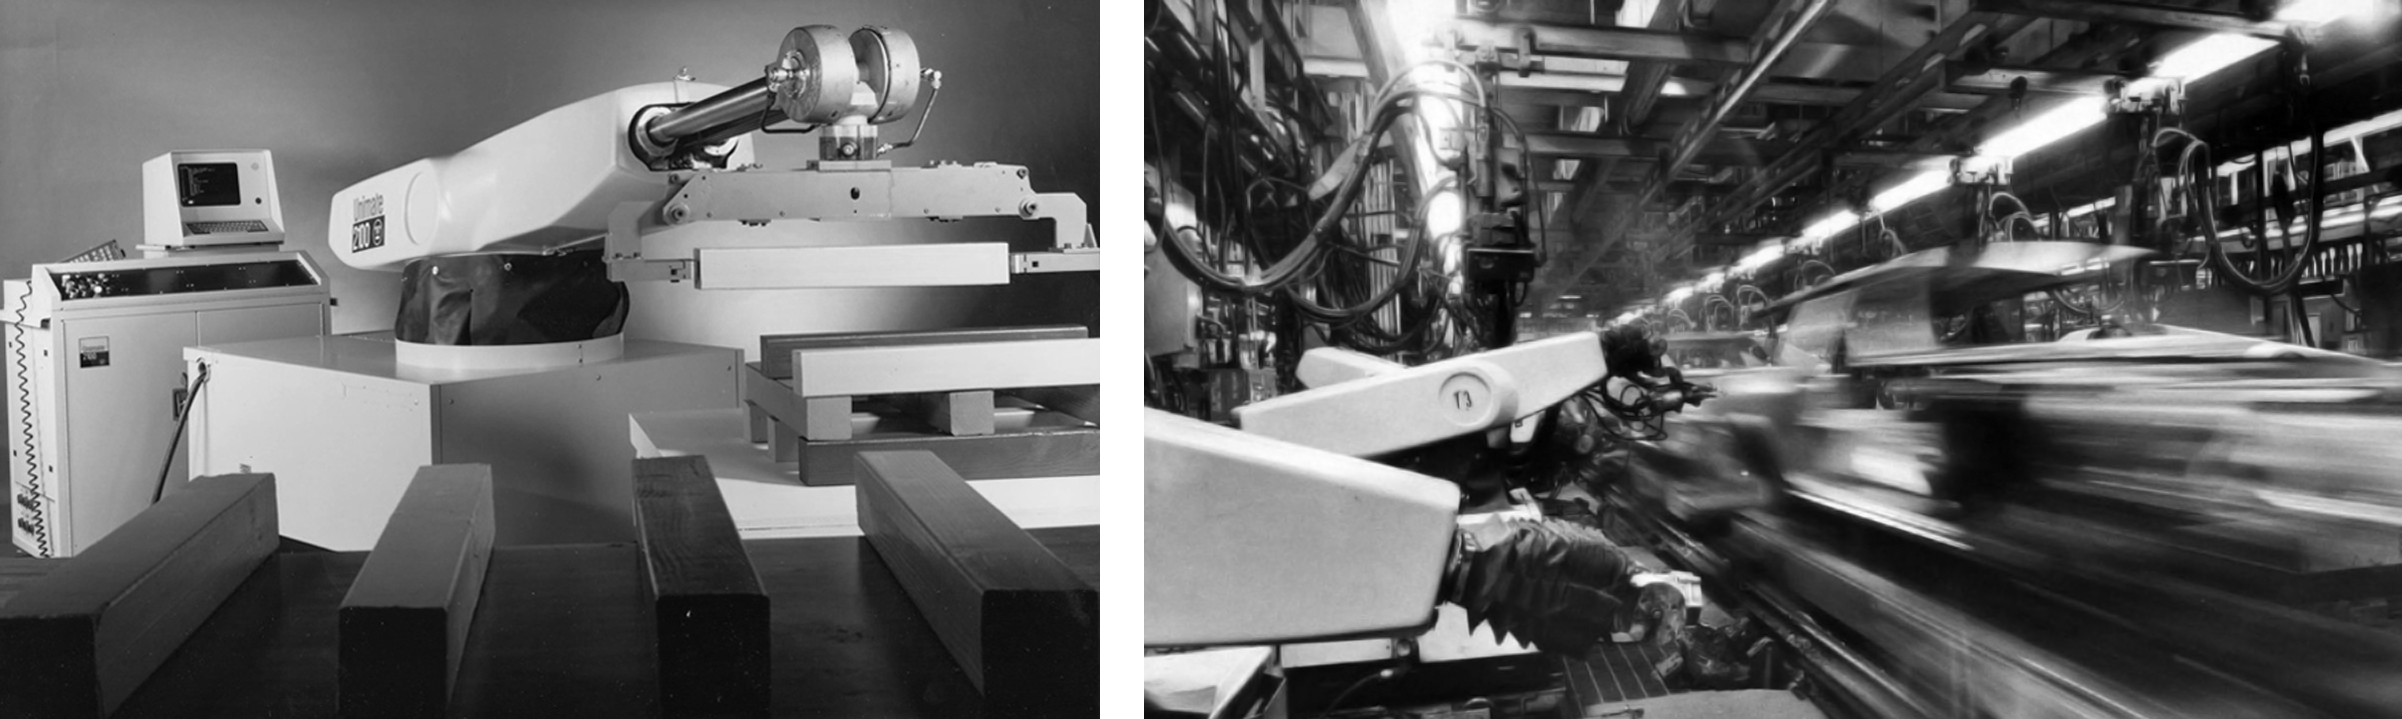 George Devol's  UNIMATE : early generation arm in 1961 (left) and the robotic workforce on GM's assembly line in 1972 (right).